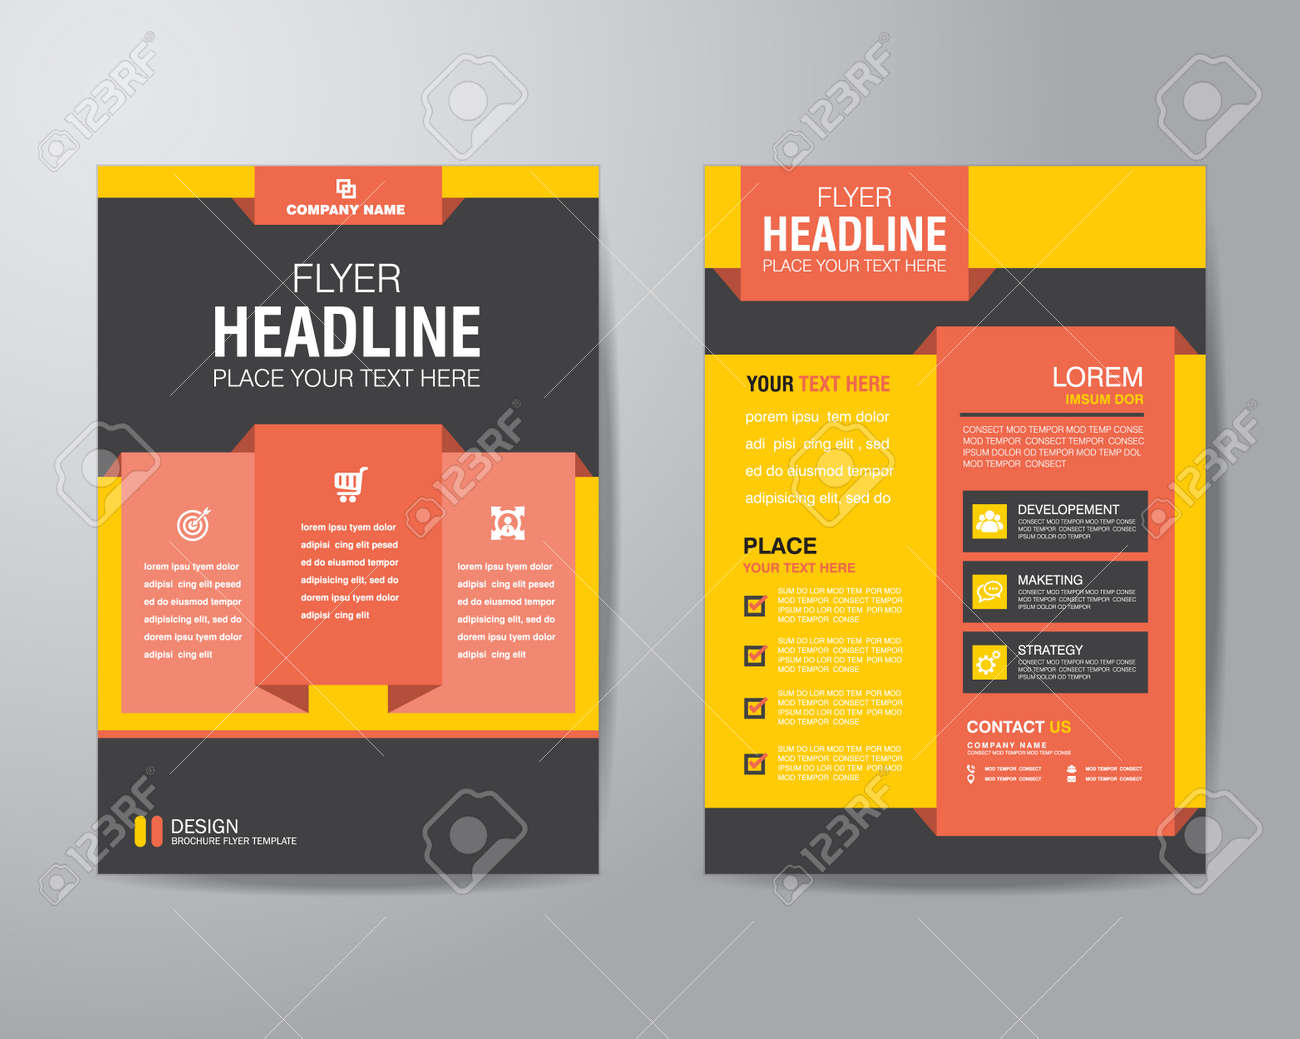 Corporate Brochure Flyer Design Layout Template In A4 Size, With ...